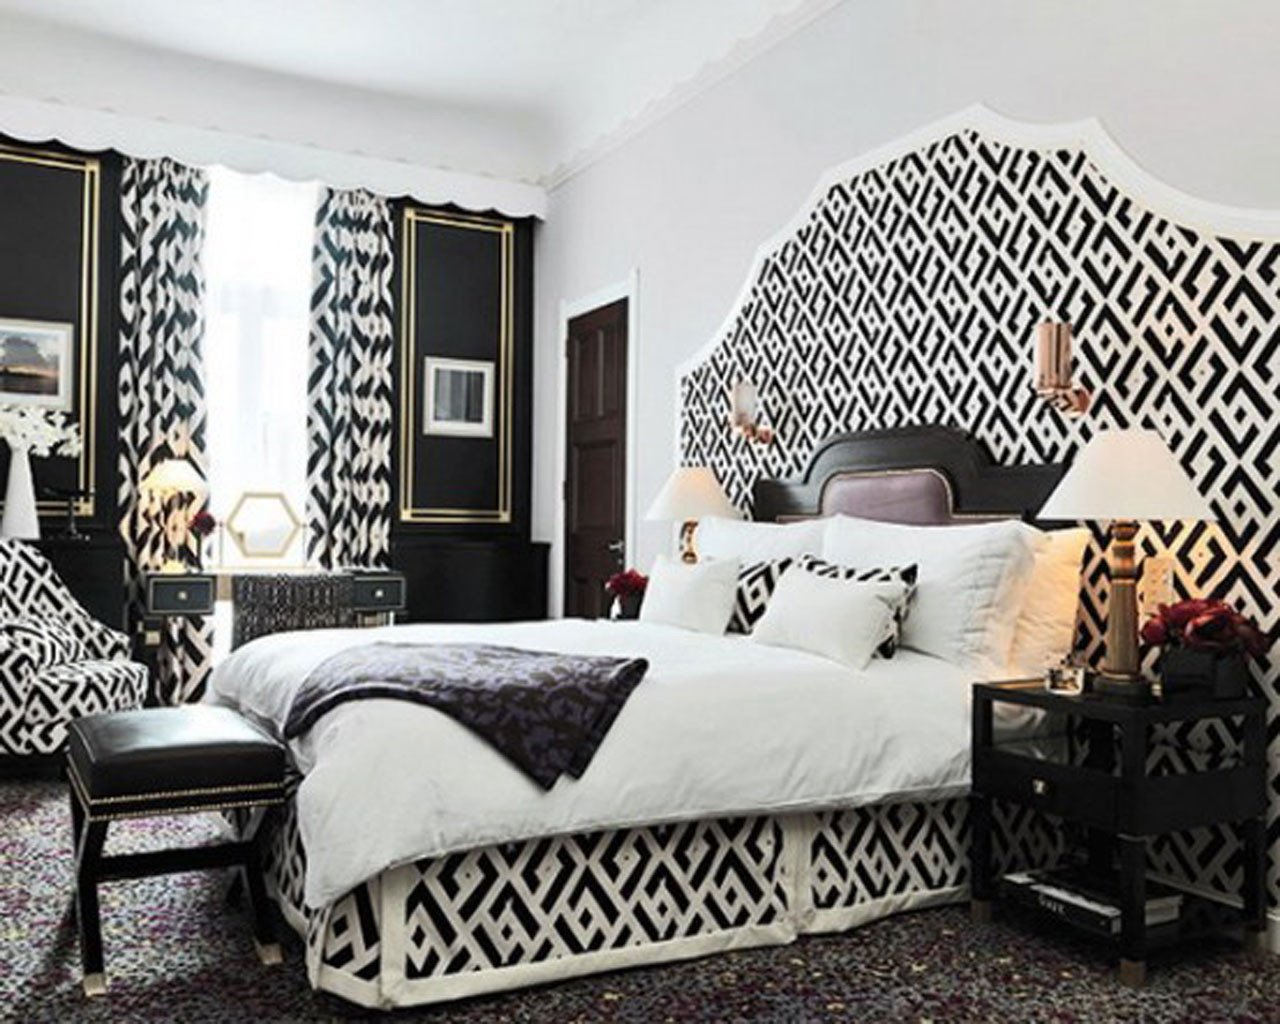 Black and White Bedroom Decor Beautiful Black and White Contemporary Interior Design Ideas for Your Dream Home Homesthetics